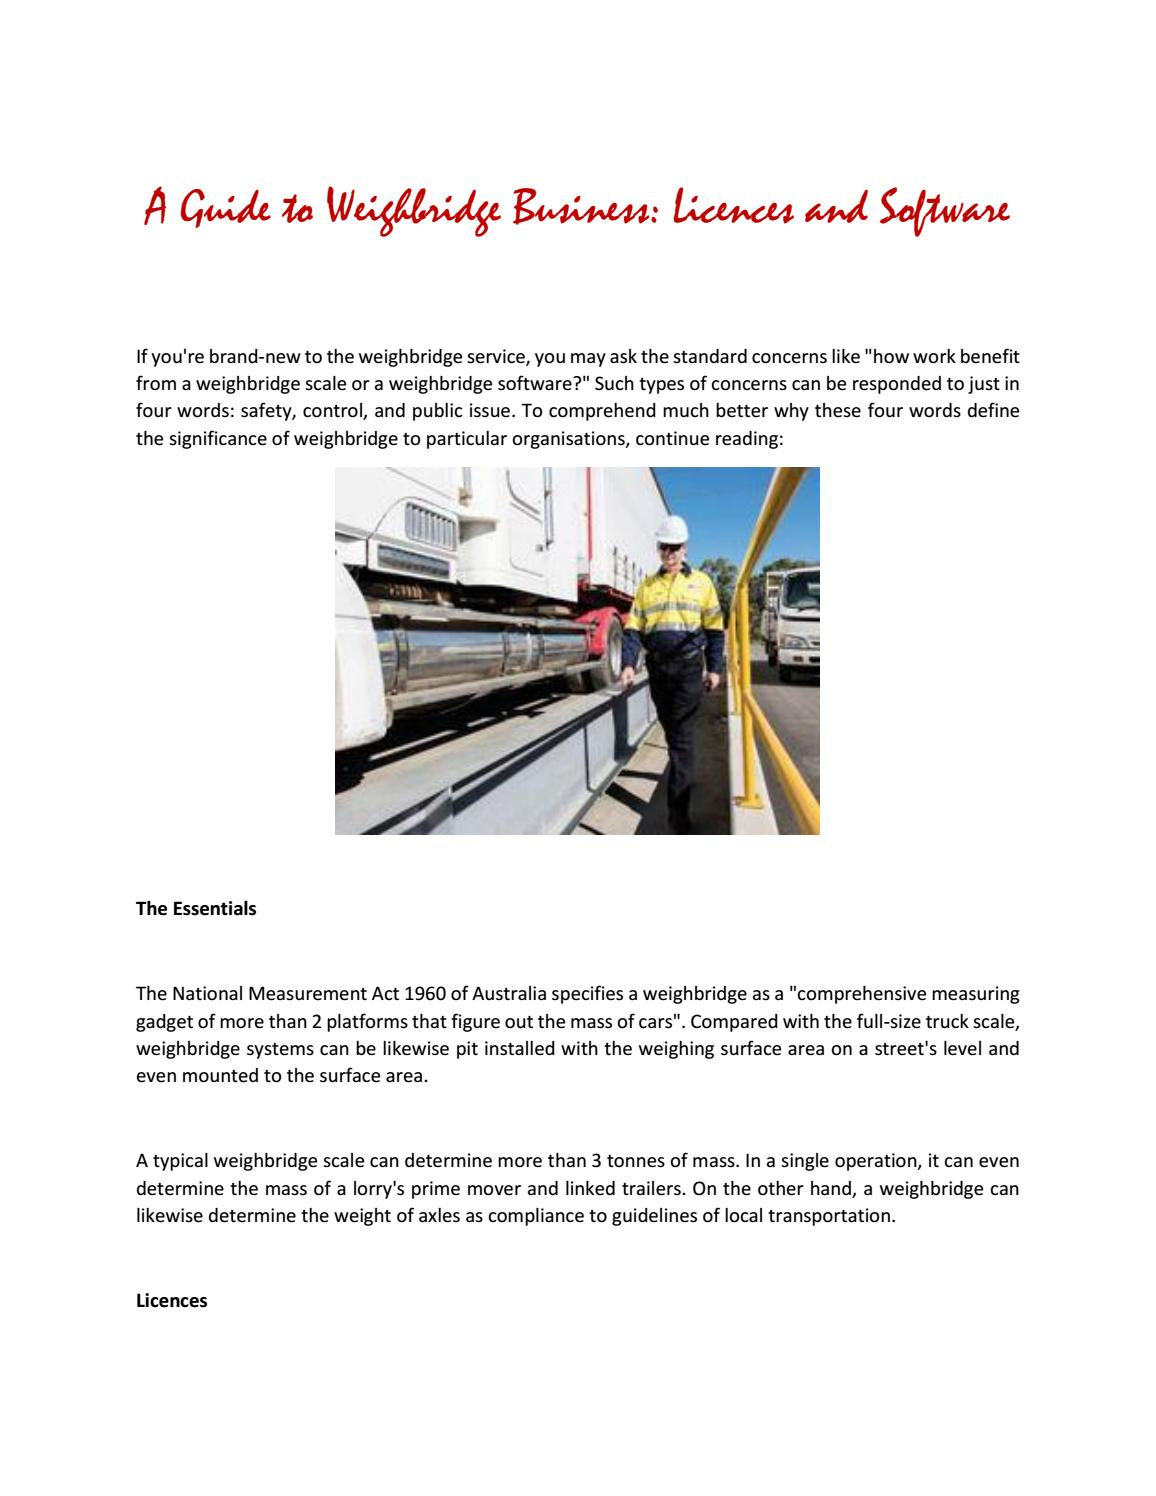 A guide to weighbridge business licences and software by